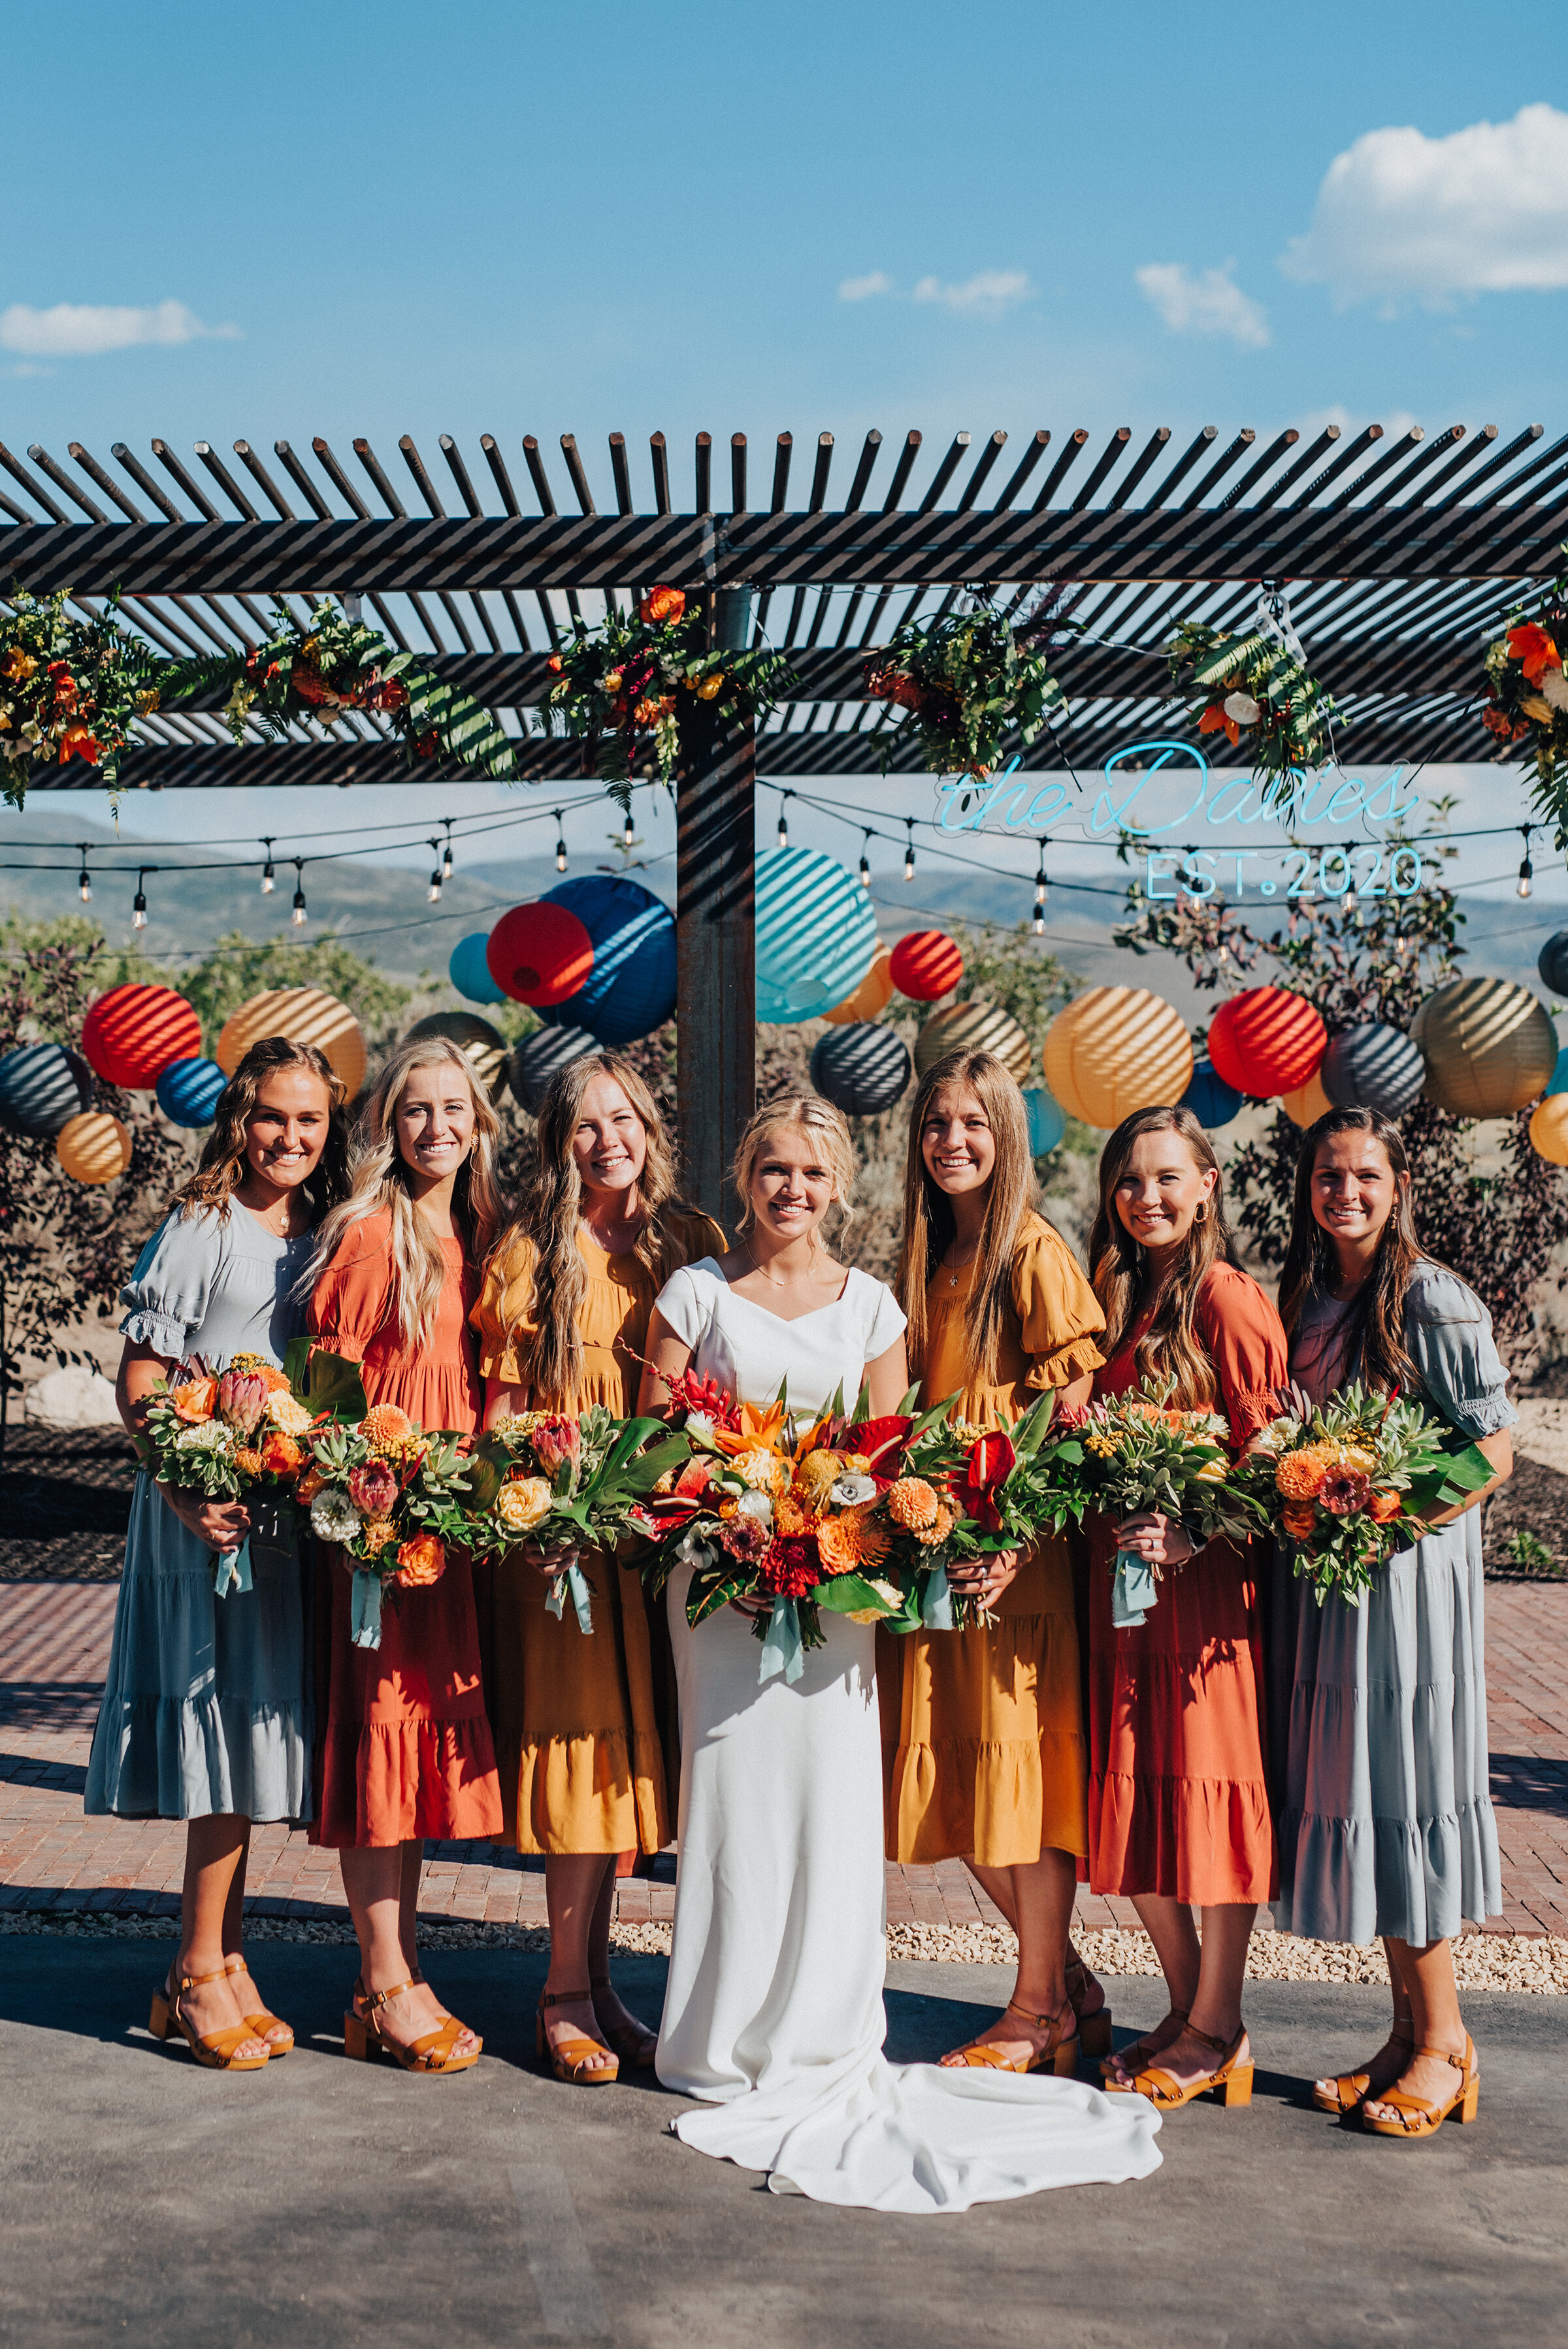 Stunning bridesmaids and bride holding beautifully handcrafted bouquets for this socially distant wedding in Park City. Kristi Alyse Photography Logan Utah photographer Park City wedding photographer Drive-Thru wedding COVID wedding neon signs socially distant wedding bride bridesmaids #kristialysephotography #weddingphotographer #utahweddings #parkcity #utahbrides #drivethruwedding #covidwedding #LoganUtahphotographer #utahweddingphotographer #bridesmaids